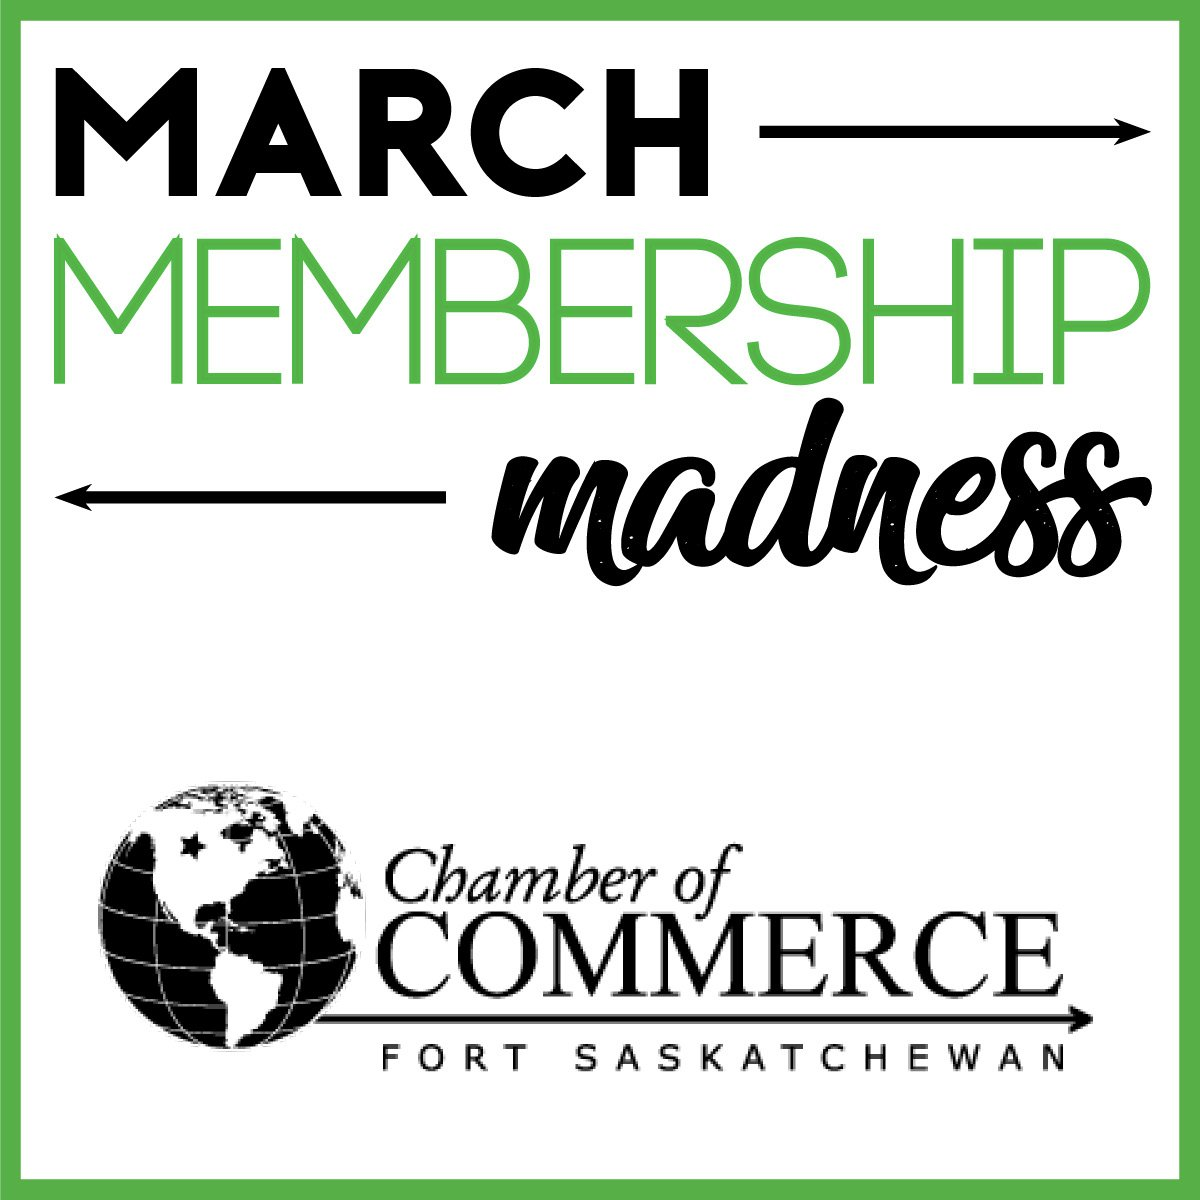 12 days left! Click here for details: https://www.fortsaskchamber.com/march-membership-madness…